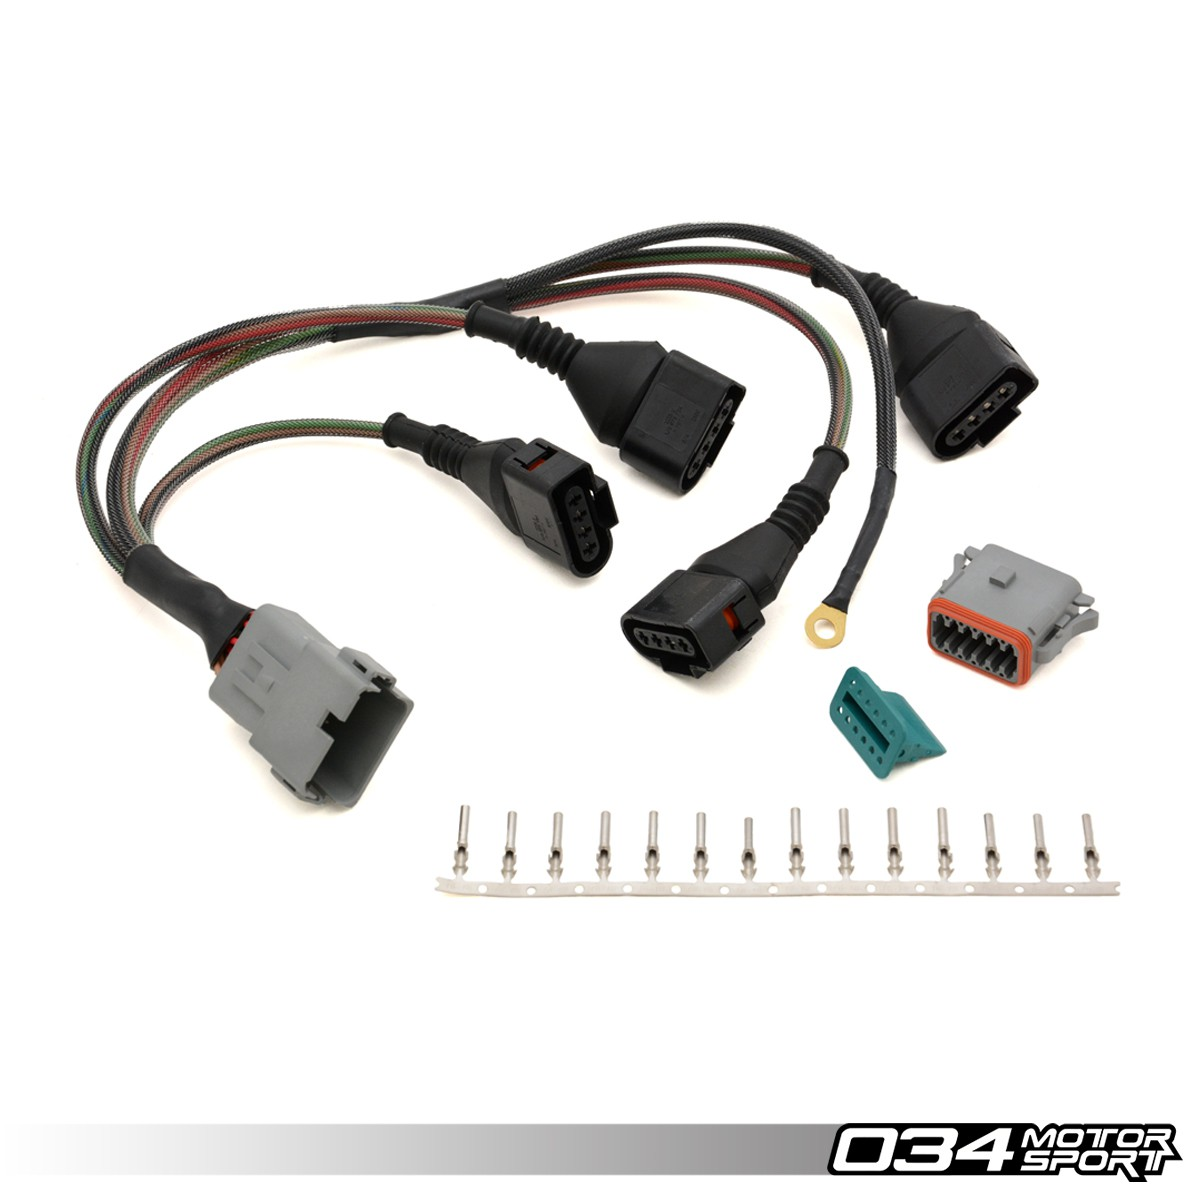 repair update harness audi volkswagen 18t with 4 wire coils 034motorsport 034 701 0004 2 repair update harness, audi volkswagen 1 8t with 4 wire coils  at couponss.co